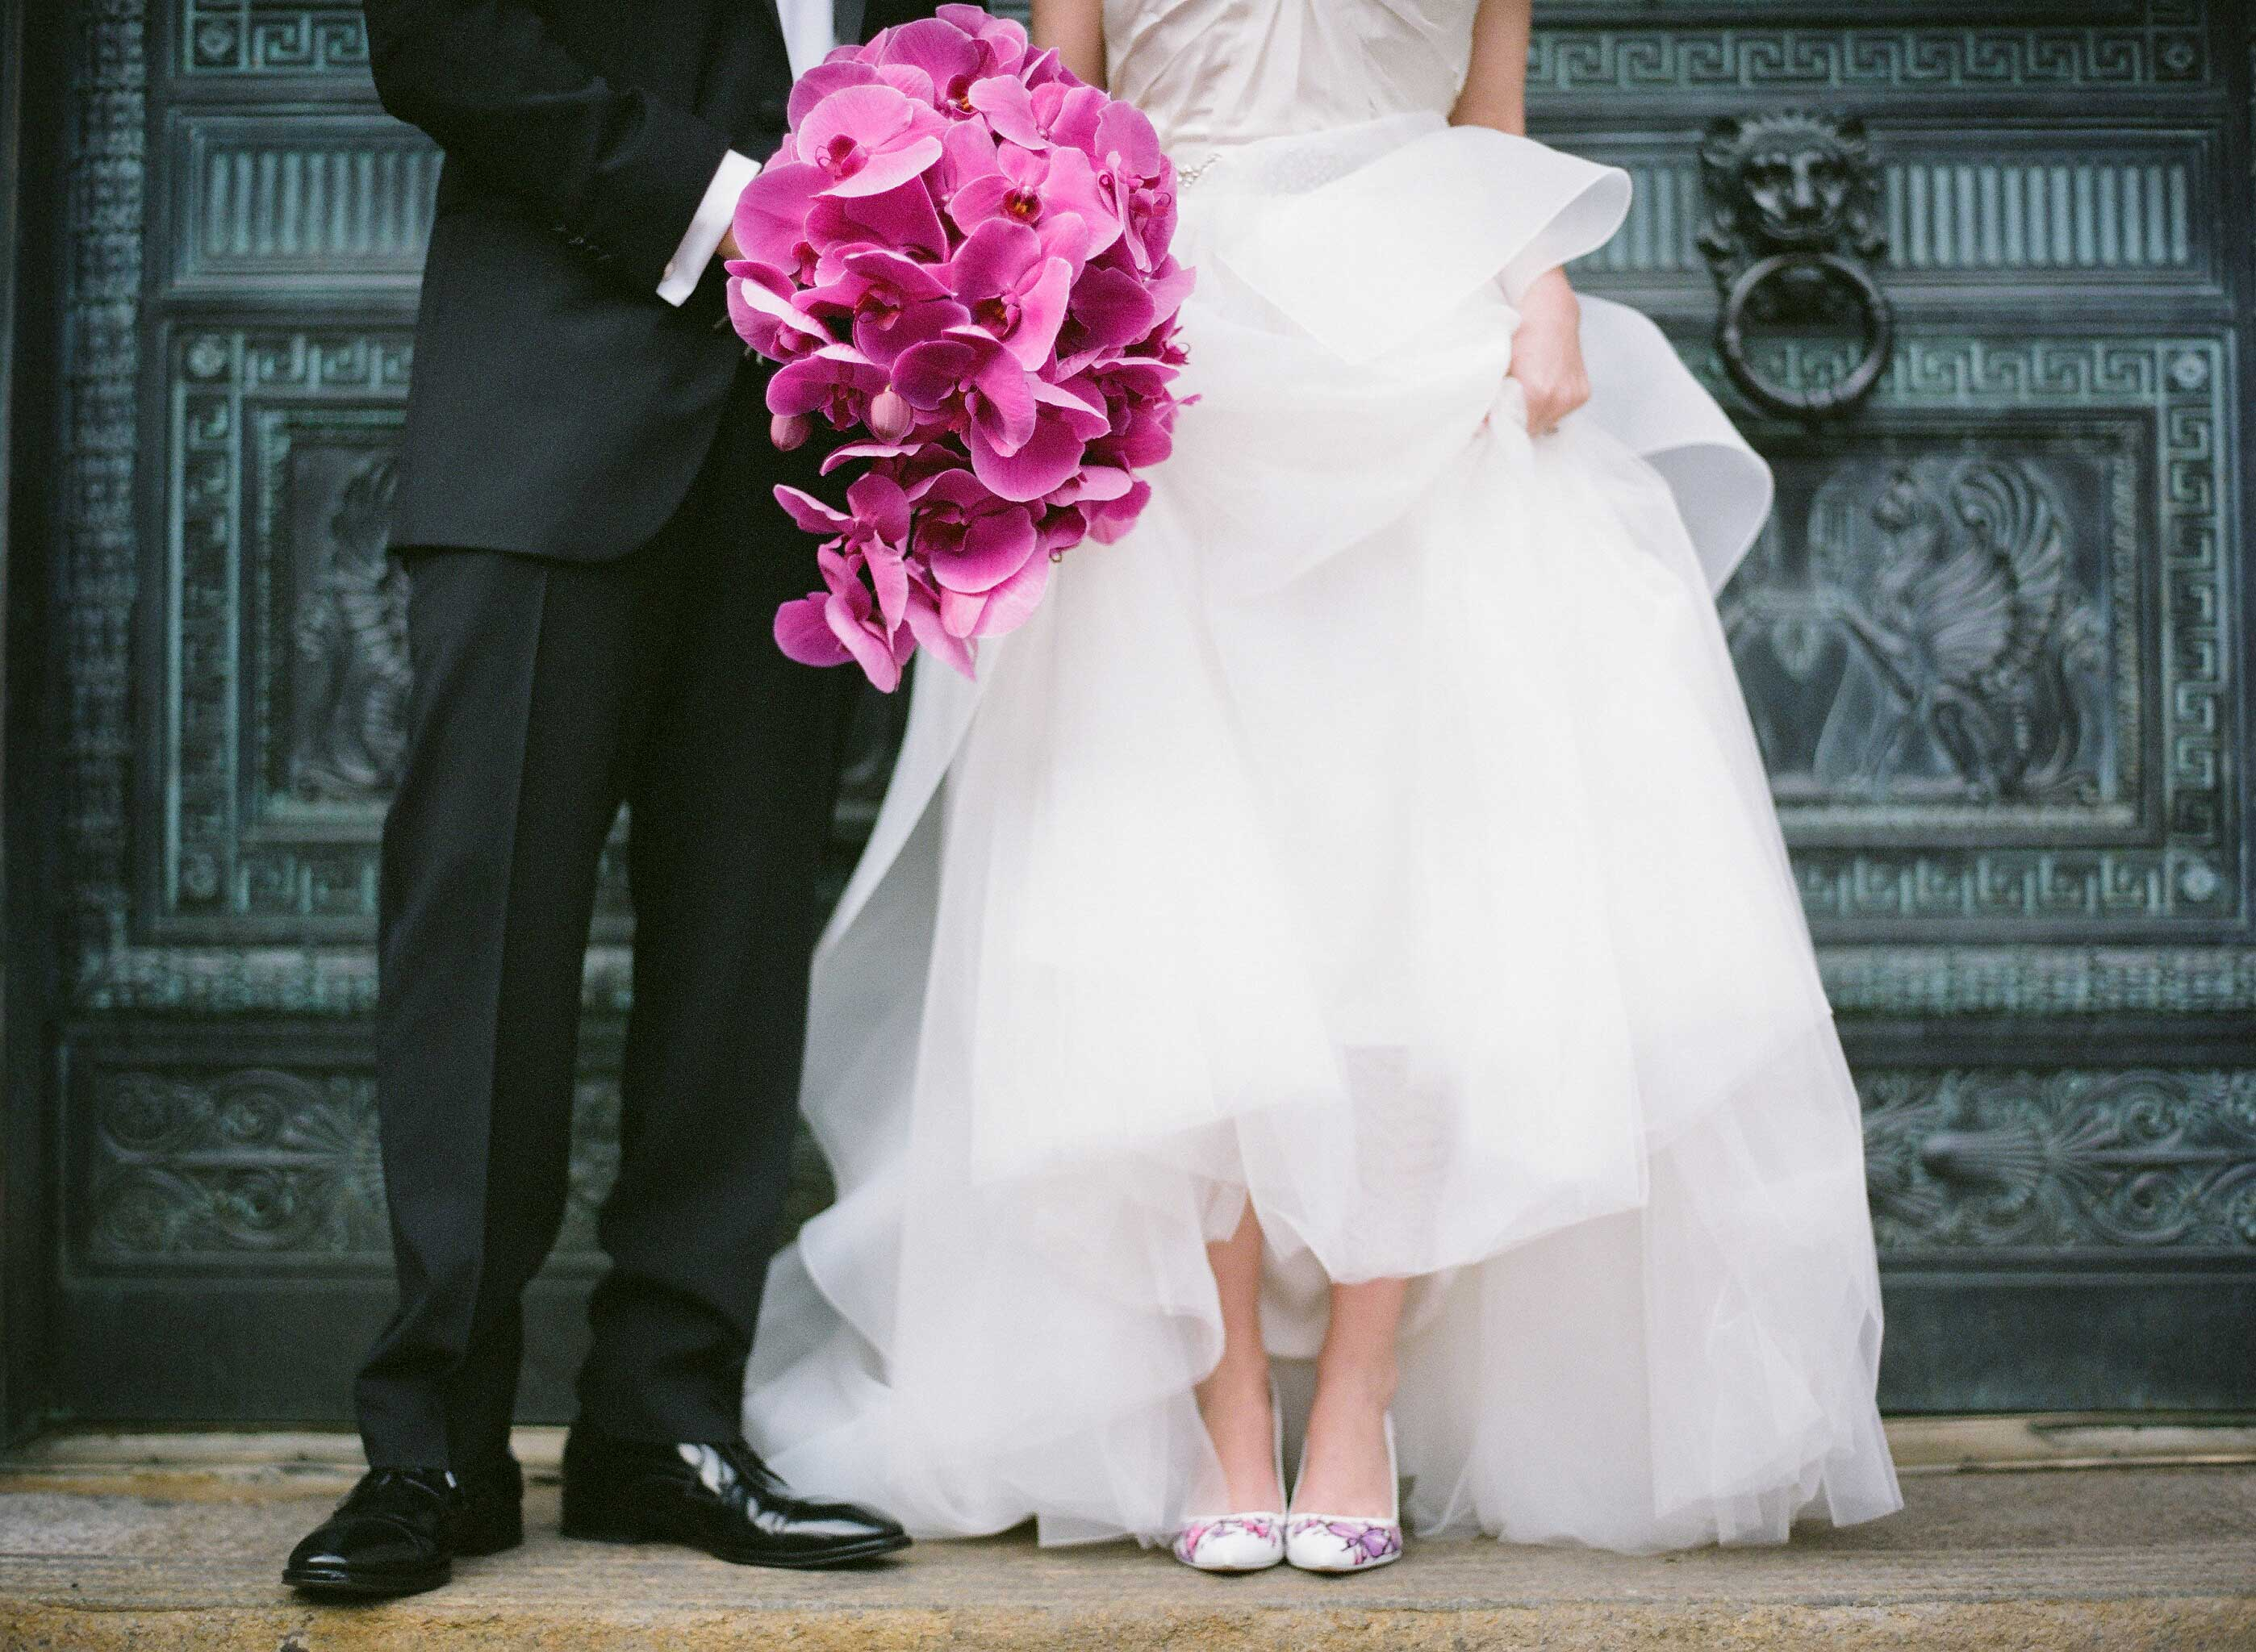 Bride in voluminous wedding dress with handpainted heels and fuchsia orchid bouquet